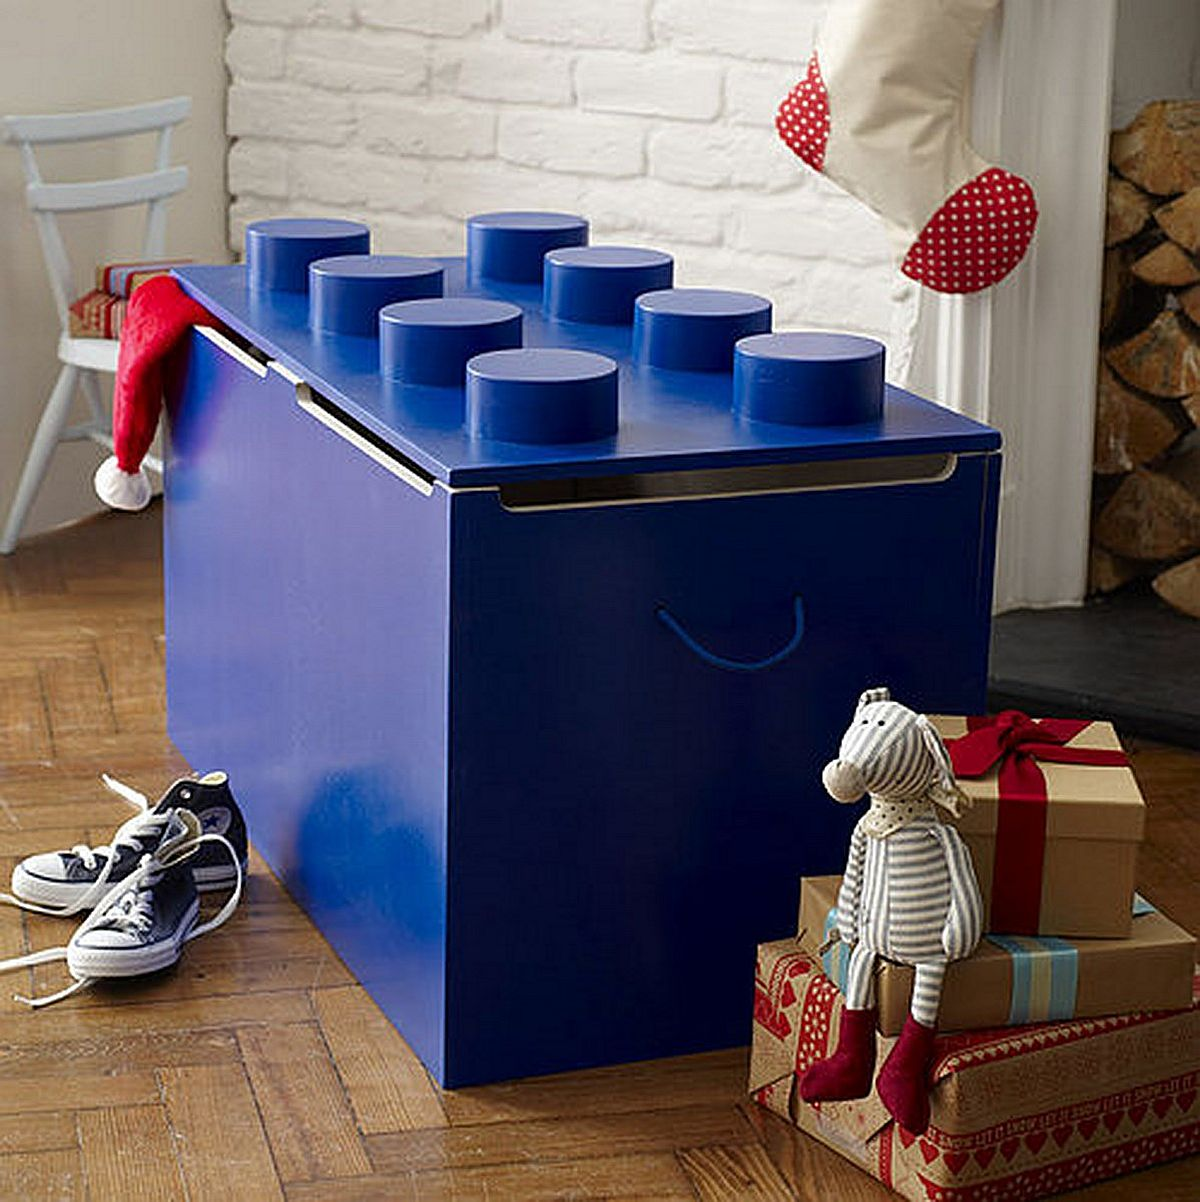 Lego-shaped toy box for the modern kids' room